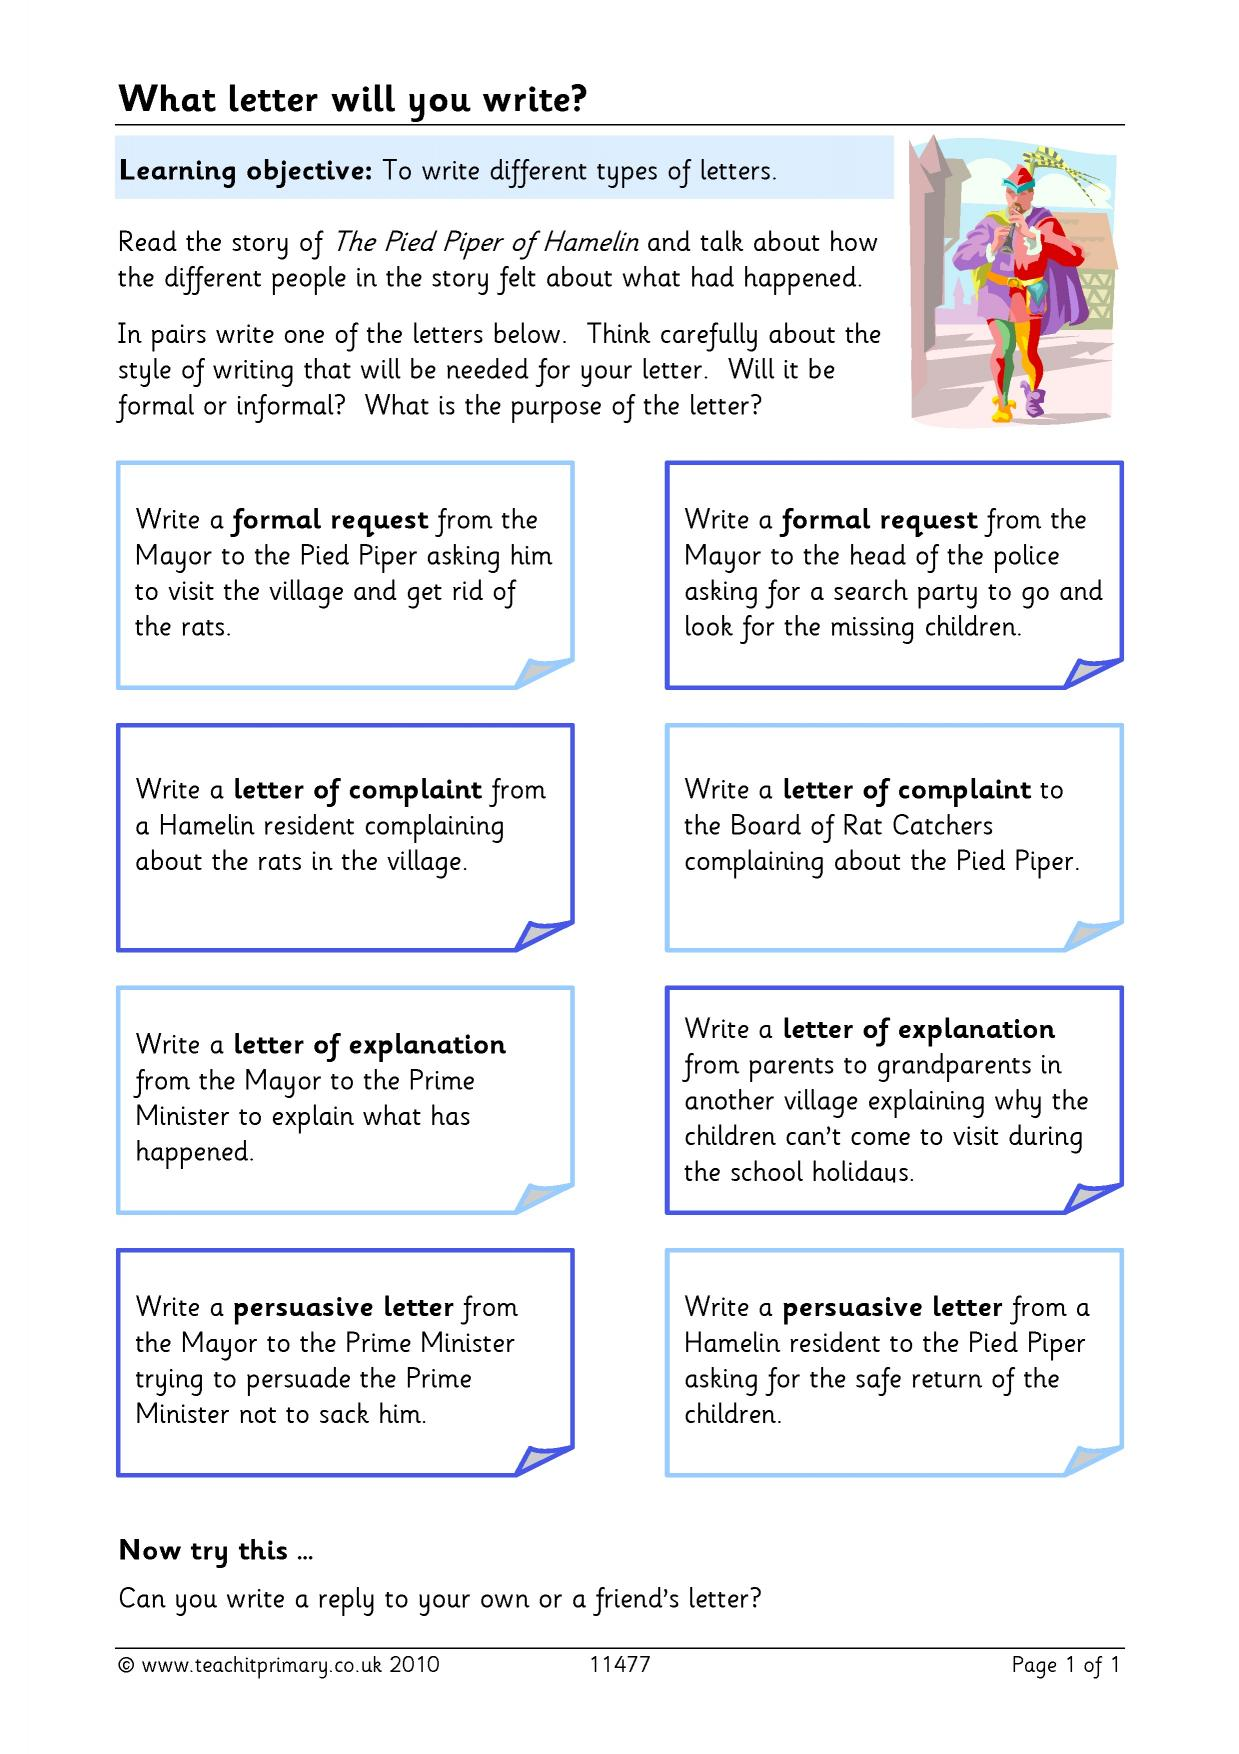 Eyfs ks1 ks2 letter writing teachit primary 2 preview spiritdancerdesigns Image collections